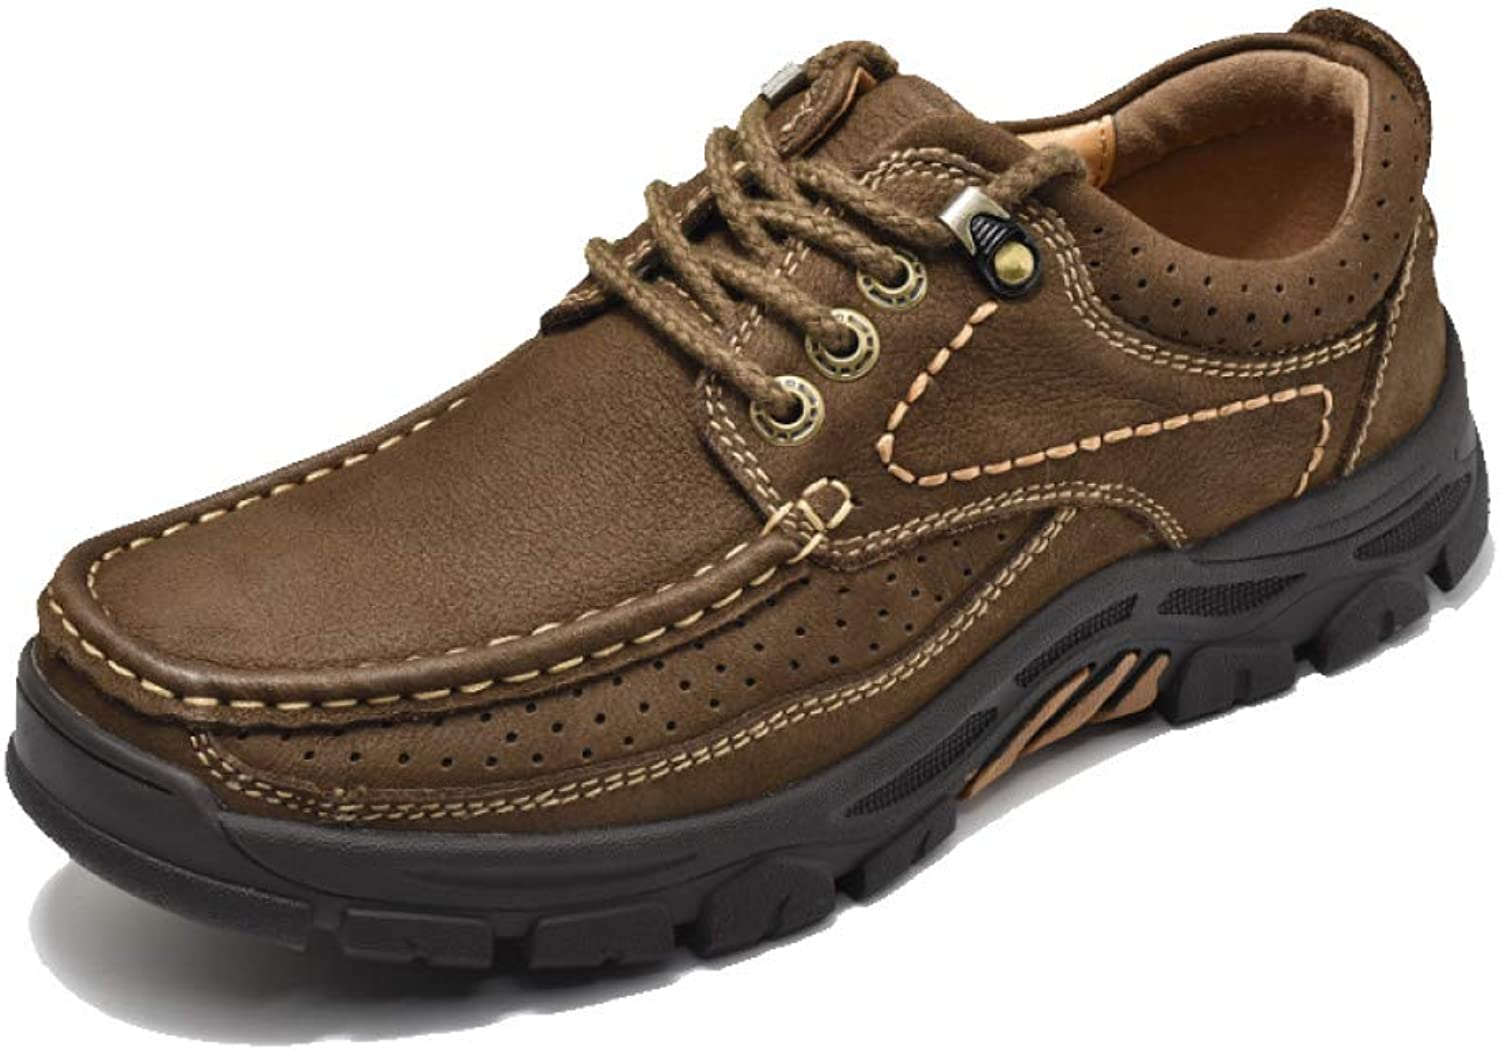 JCZR Men's Casual shoes, Hand-Stitched, Lace-up Driving shoes, Large Size shoes